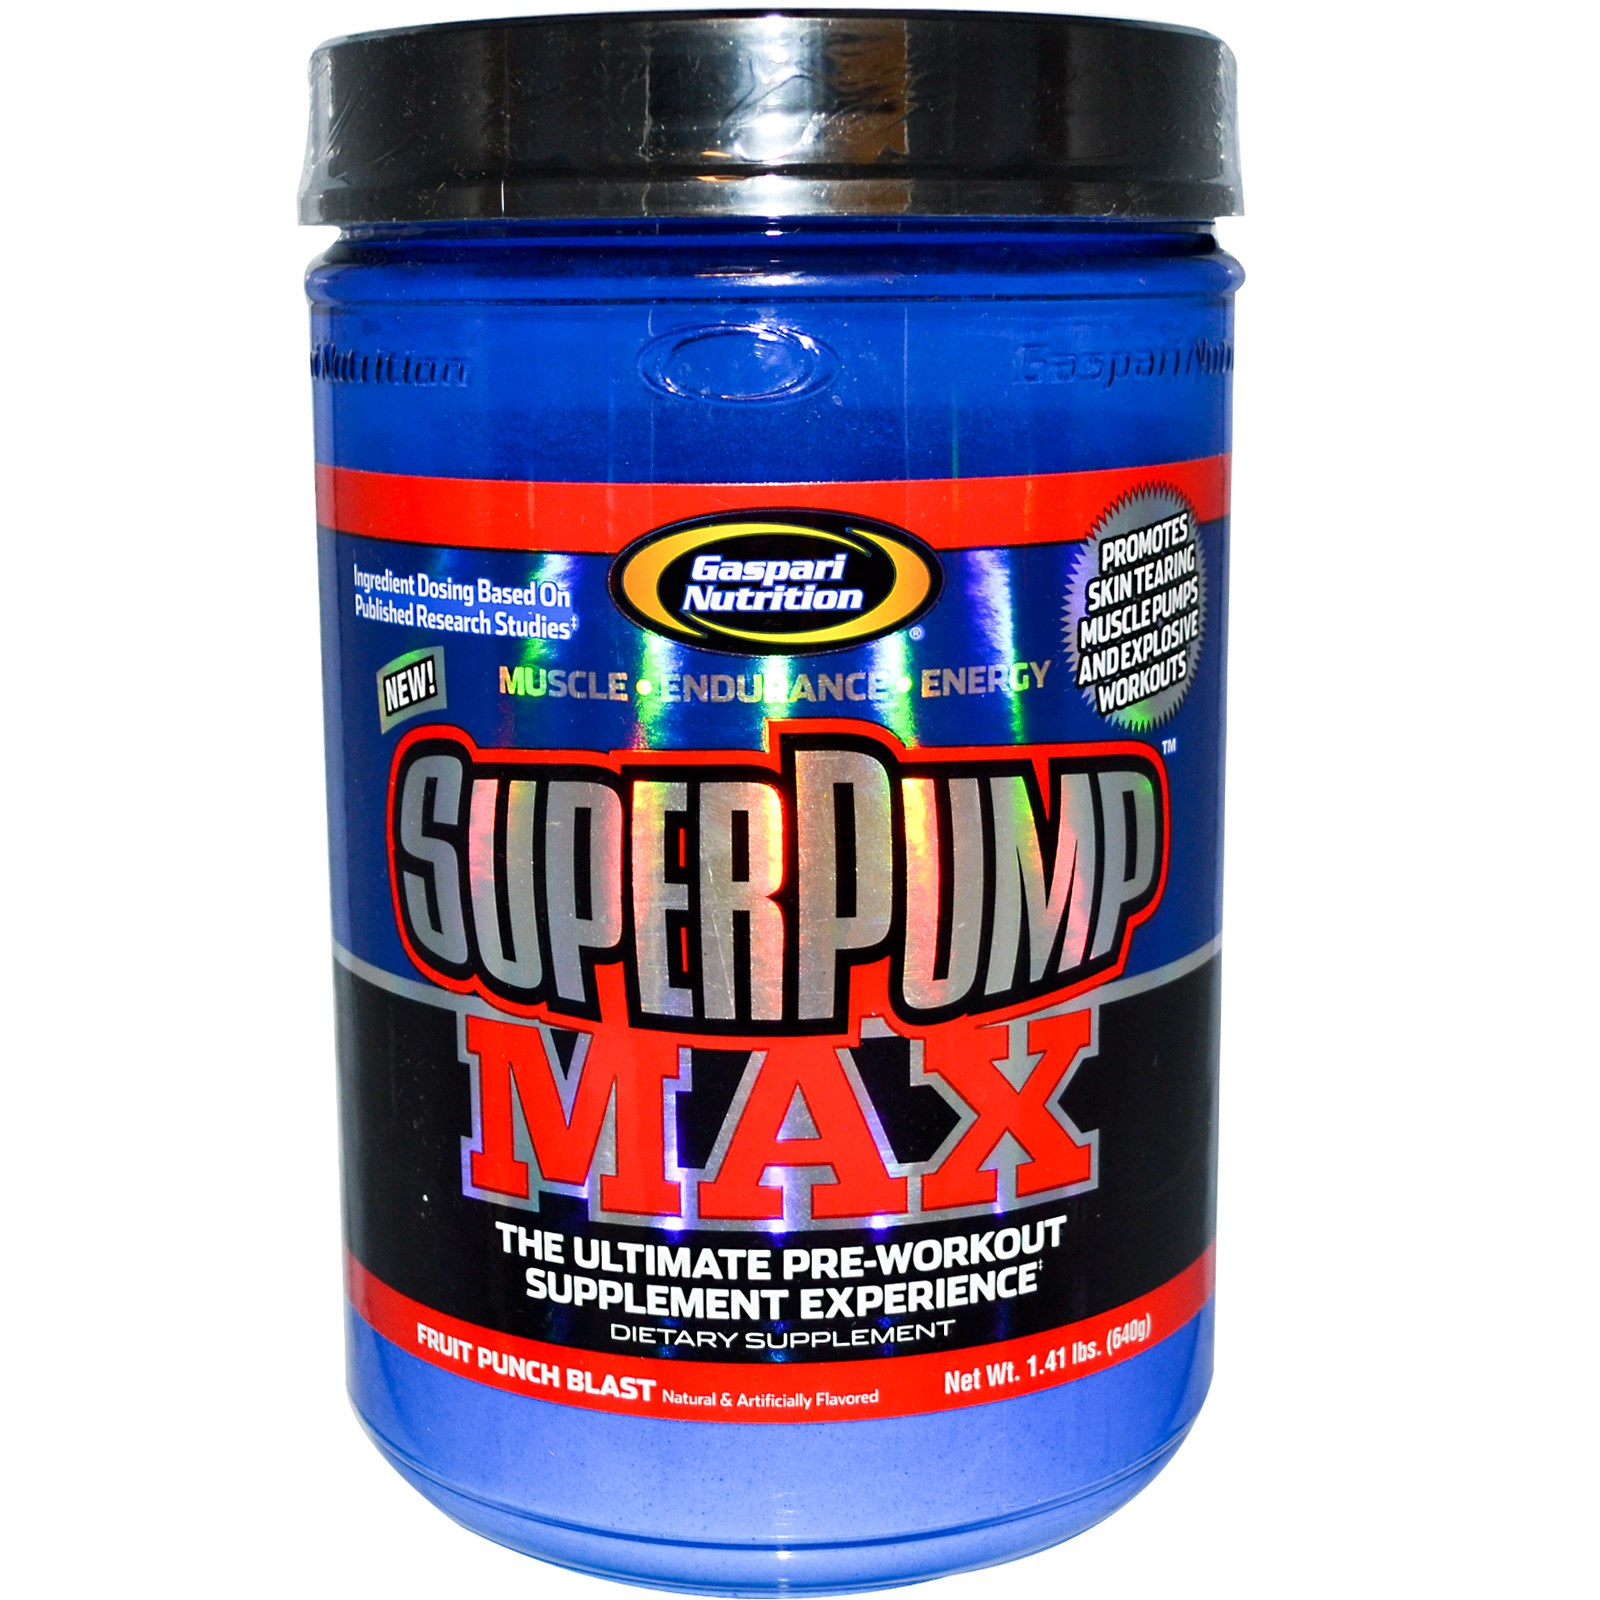 Gaspari Nutrition SuperPump Max Fruit Punch Blast - 1.41 lbs